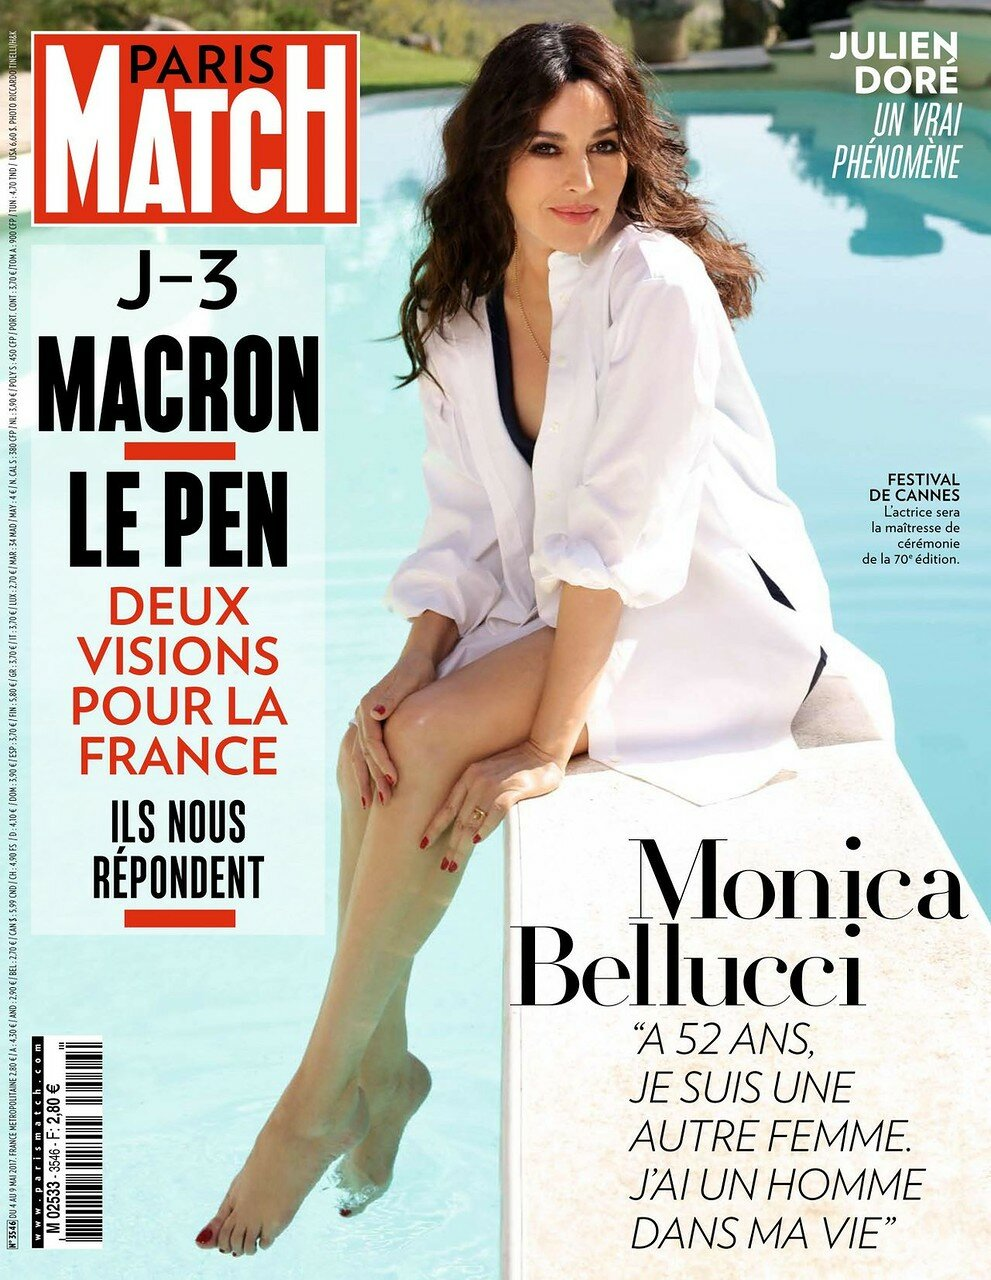 monica-bellucci-paris-match-magazine-may-2017-issue-2.jpg